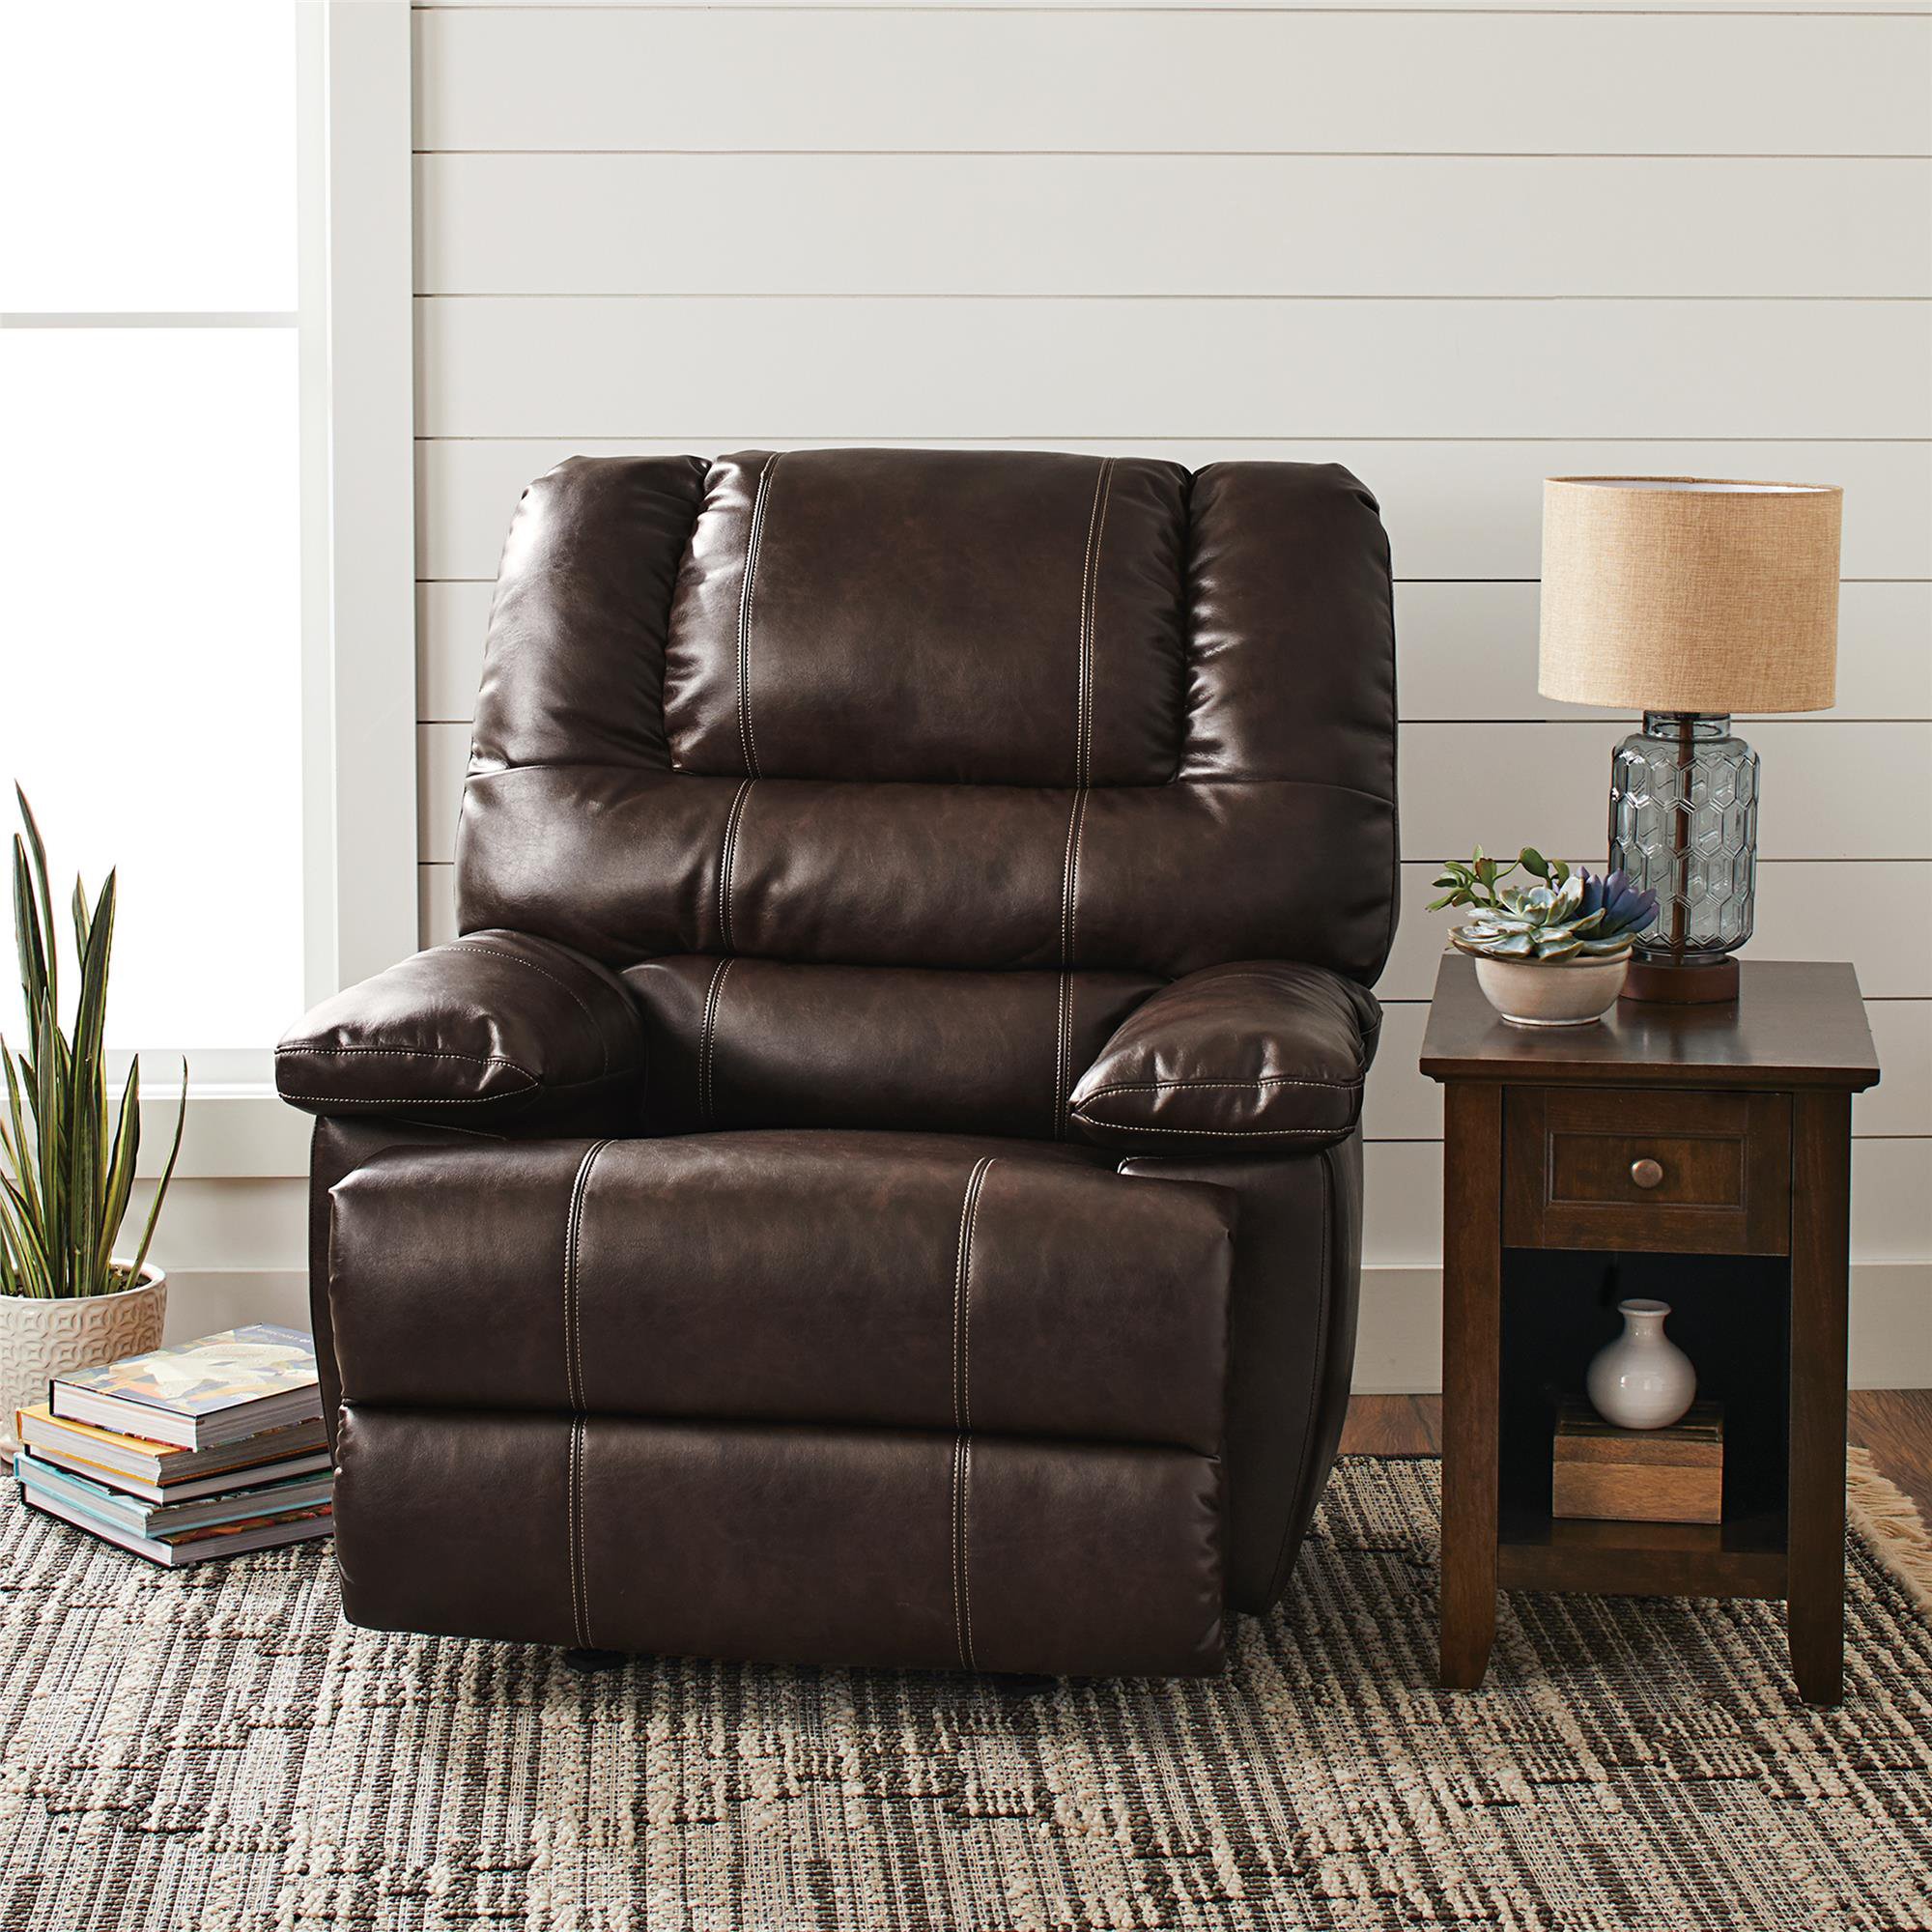 Better Homes & Gardens Deluxe Rocking Recliner, Multiple Colors